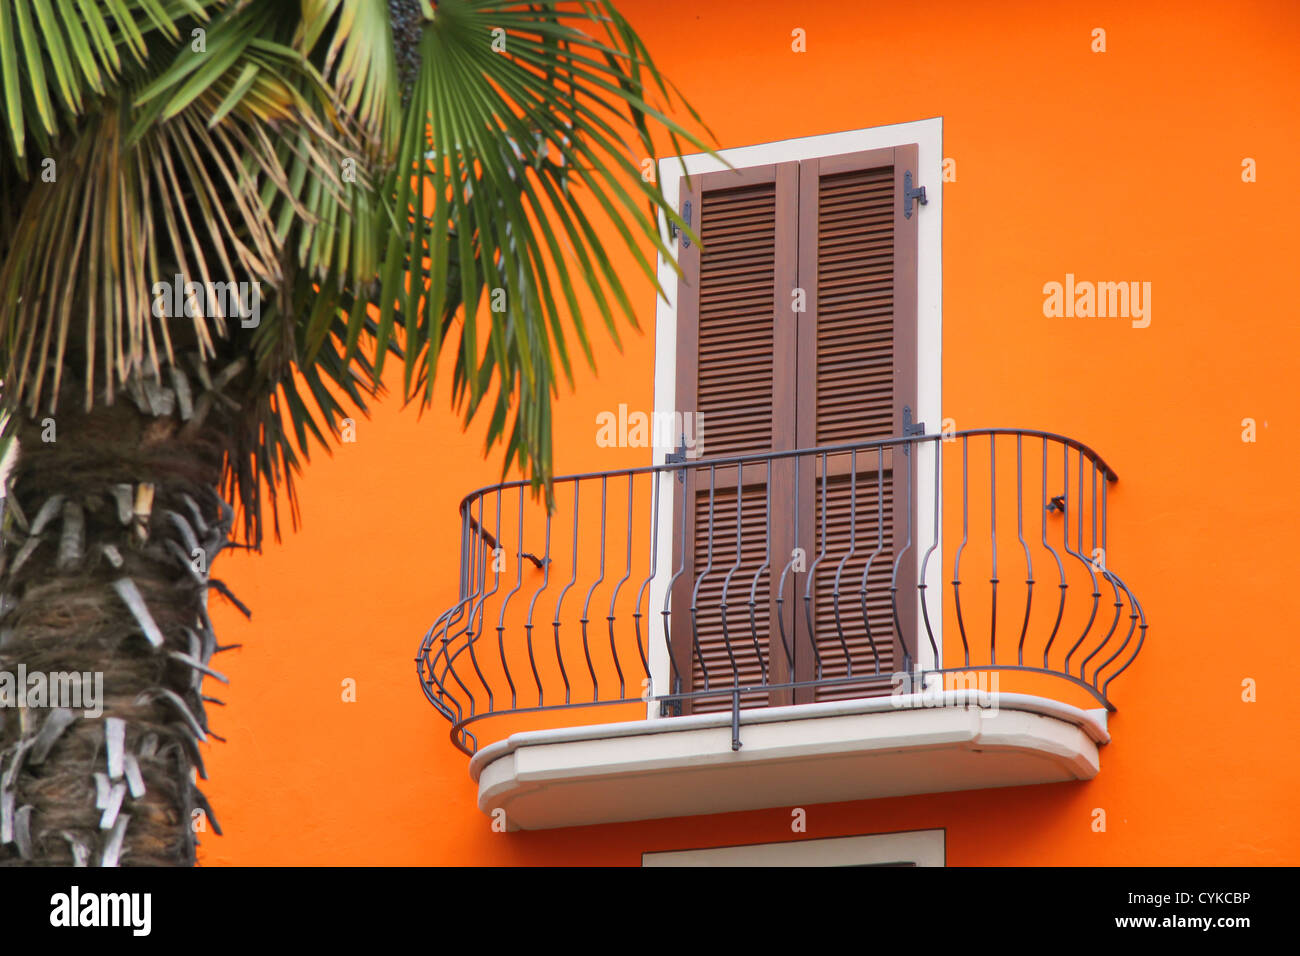 Balcony of a house with an orange facade in Sirmione on Lake Garda, Region of Brescia, Lombardy, Italy - Stock Image